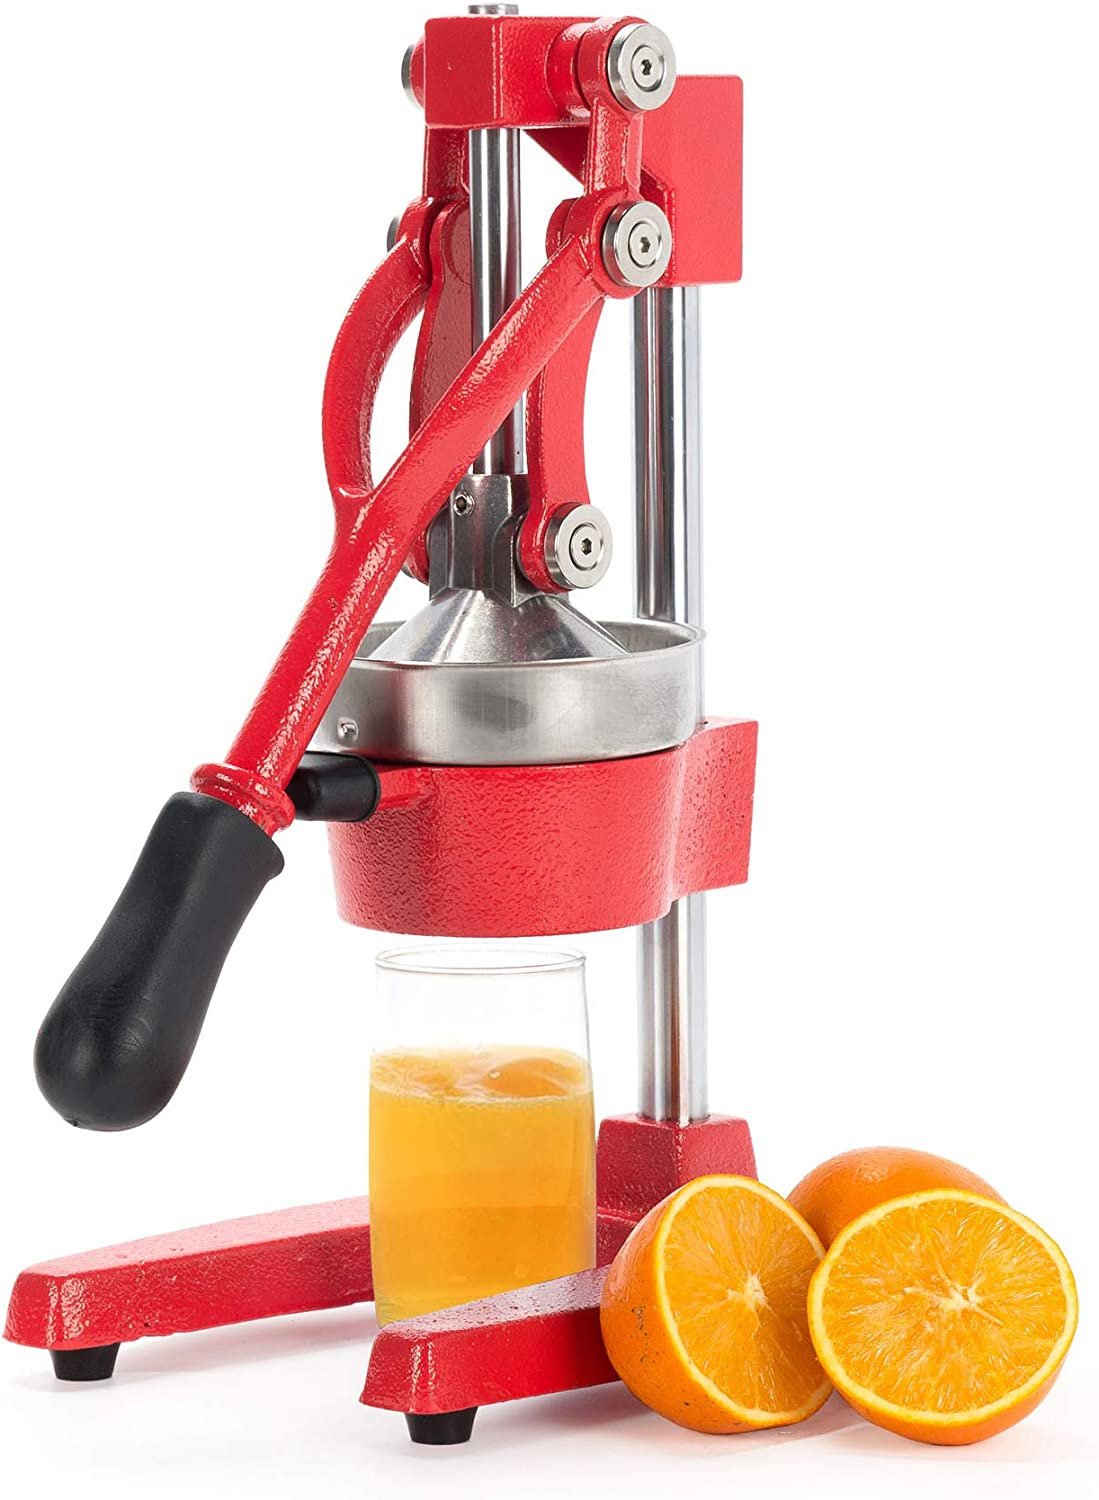 CO-Z Commercial Grade Citrus Juicer Professional Hand Press Manual Fruit Juicer Orange Juice Squeezer for Lemon Lime Pomegranate (Red Cast Iron/Stainless Steel)